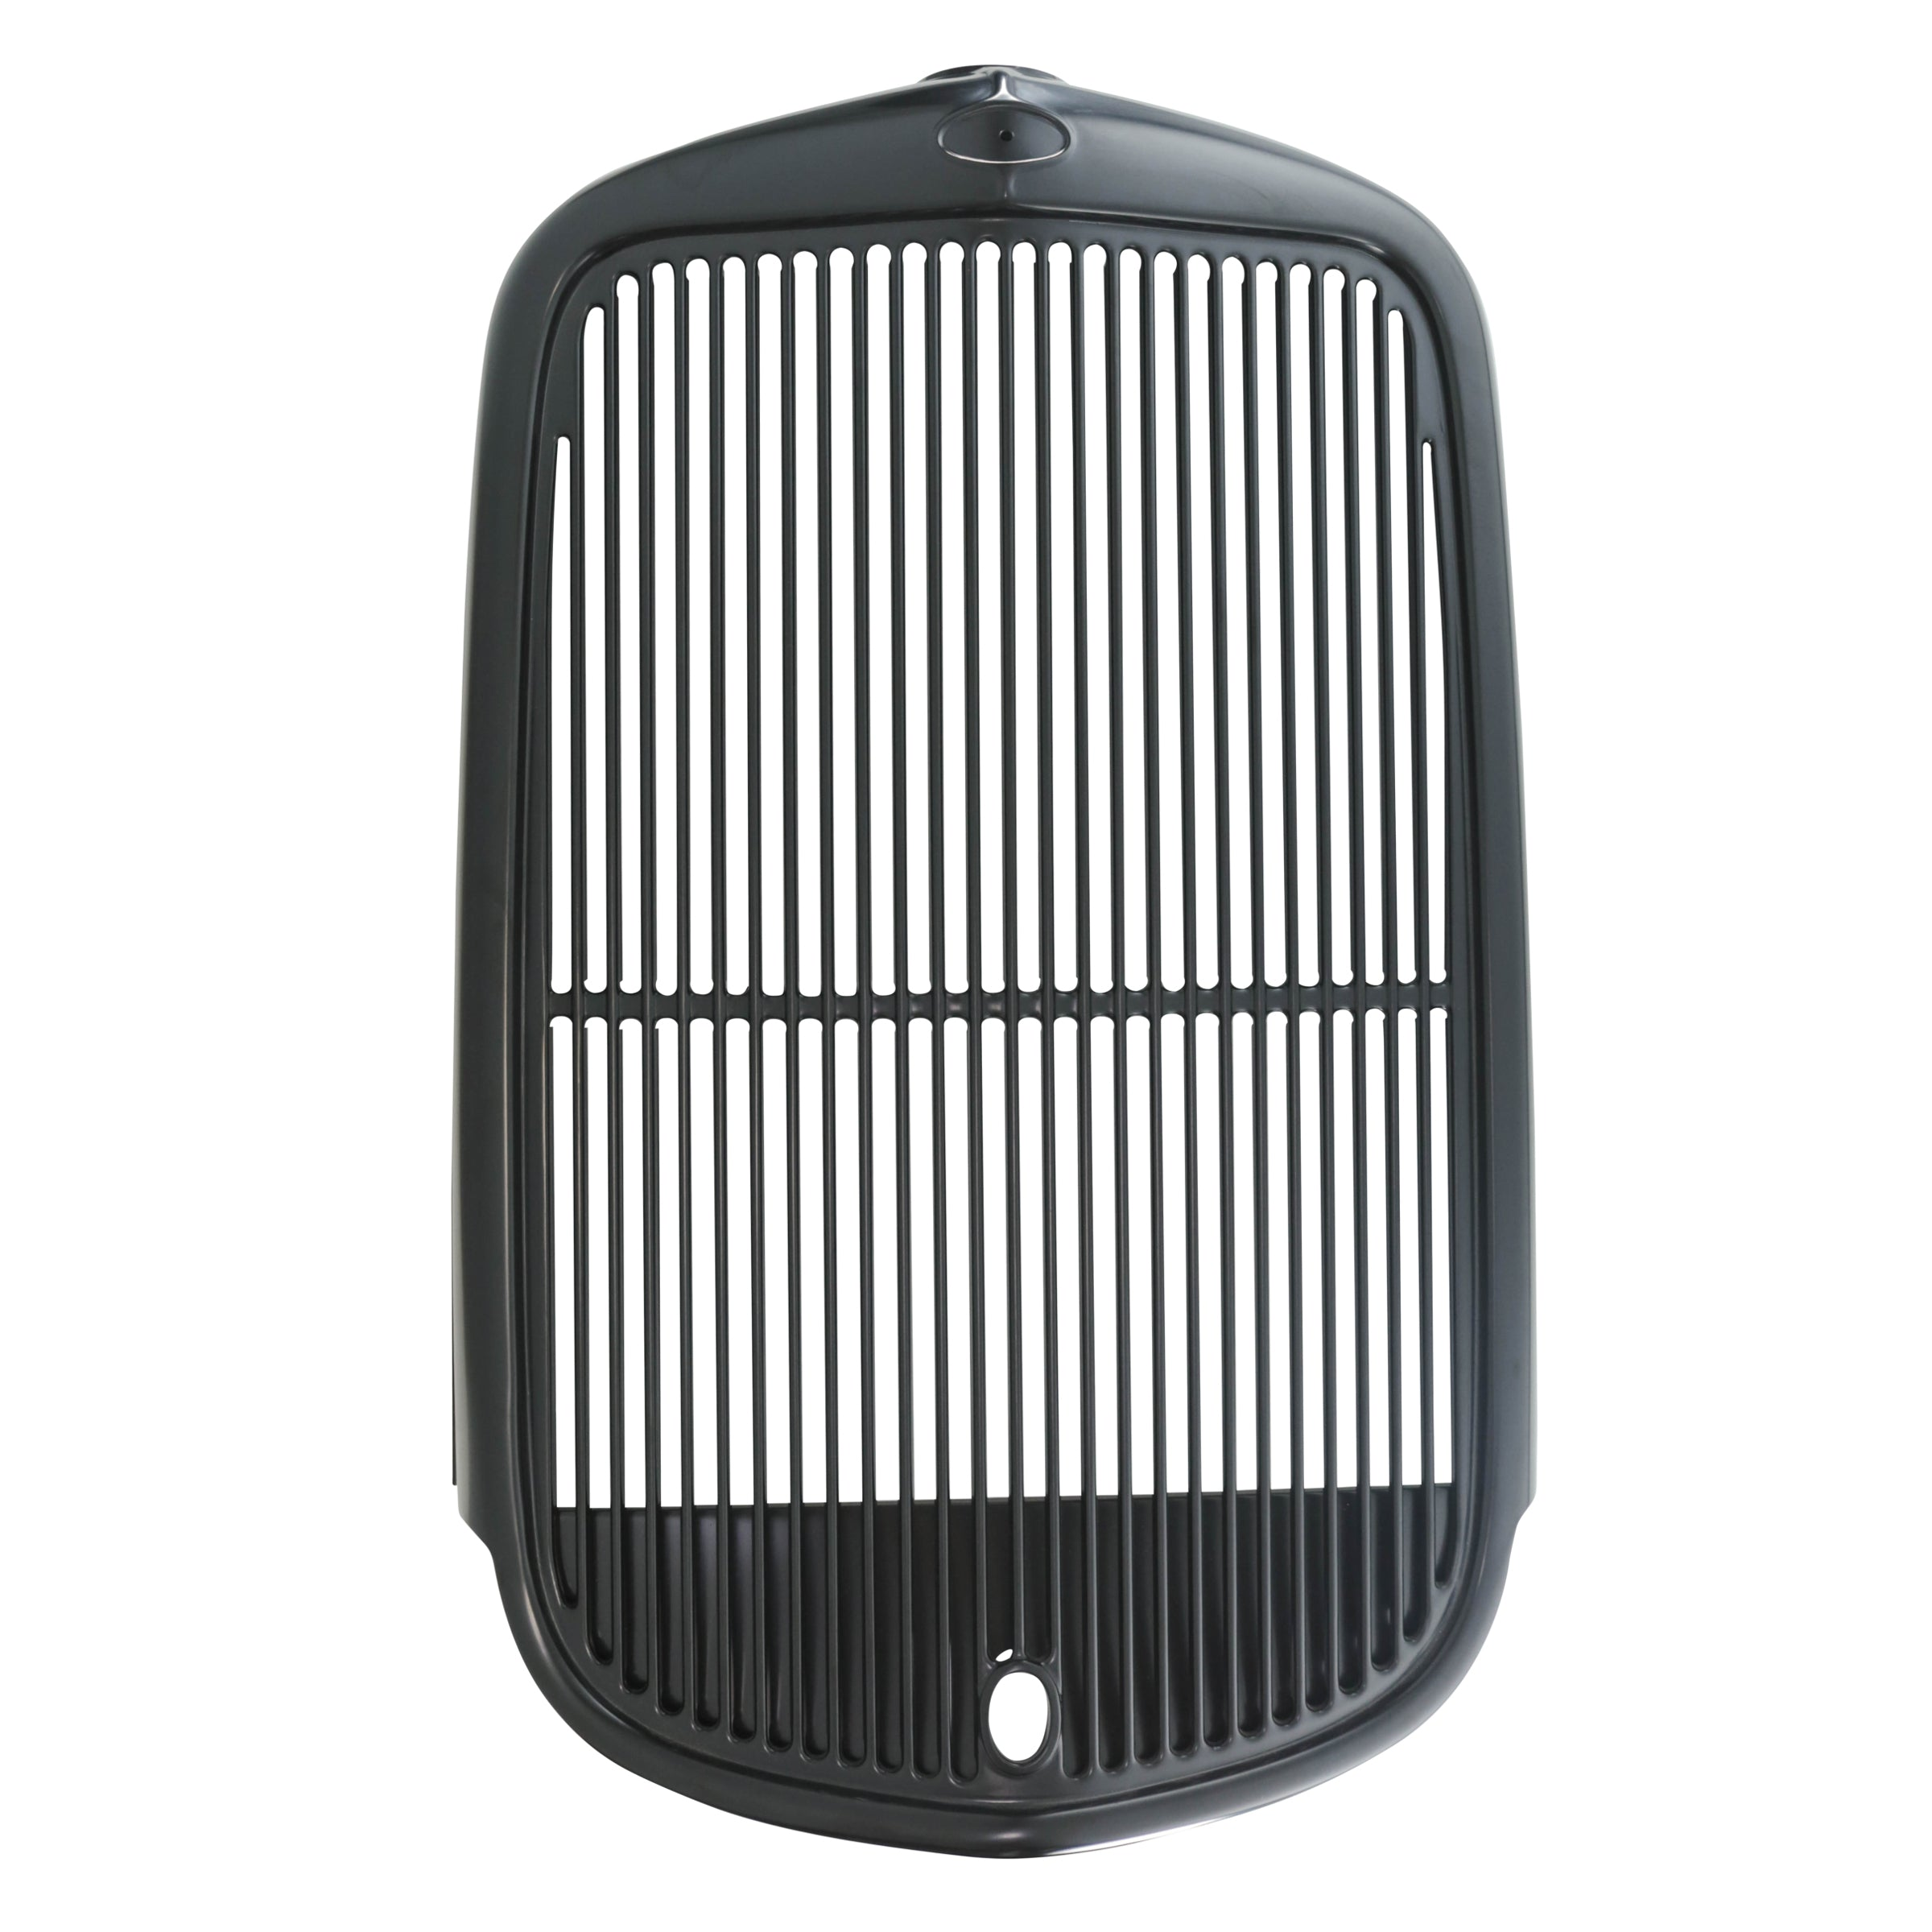 Steel Radiator Grille Shell (Plain Steel) • 1932 Ford Pickup & Commercial